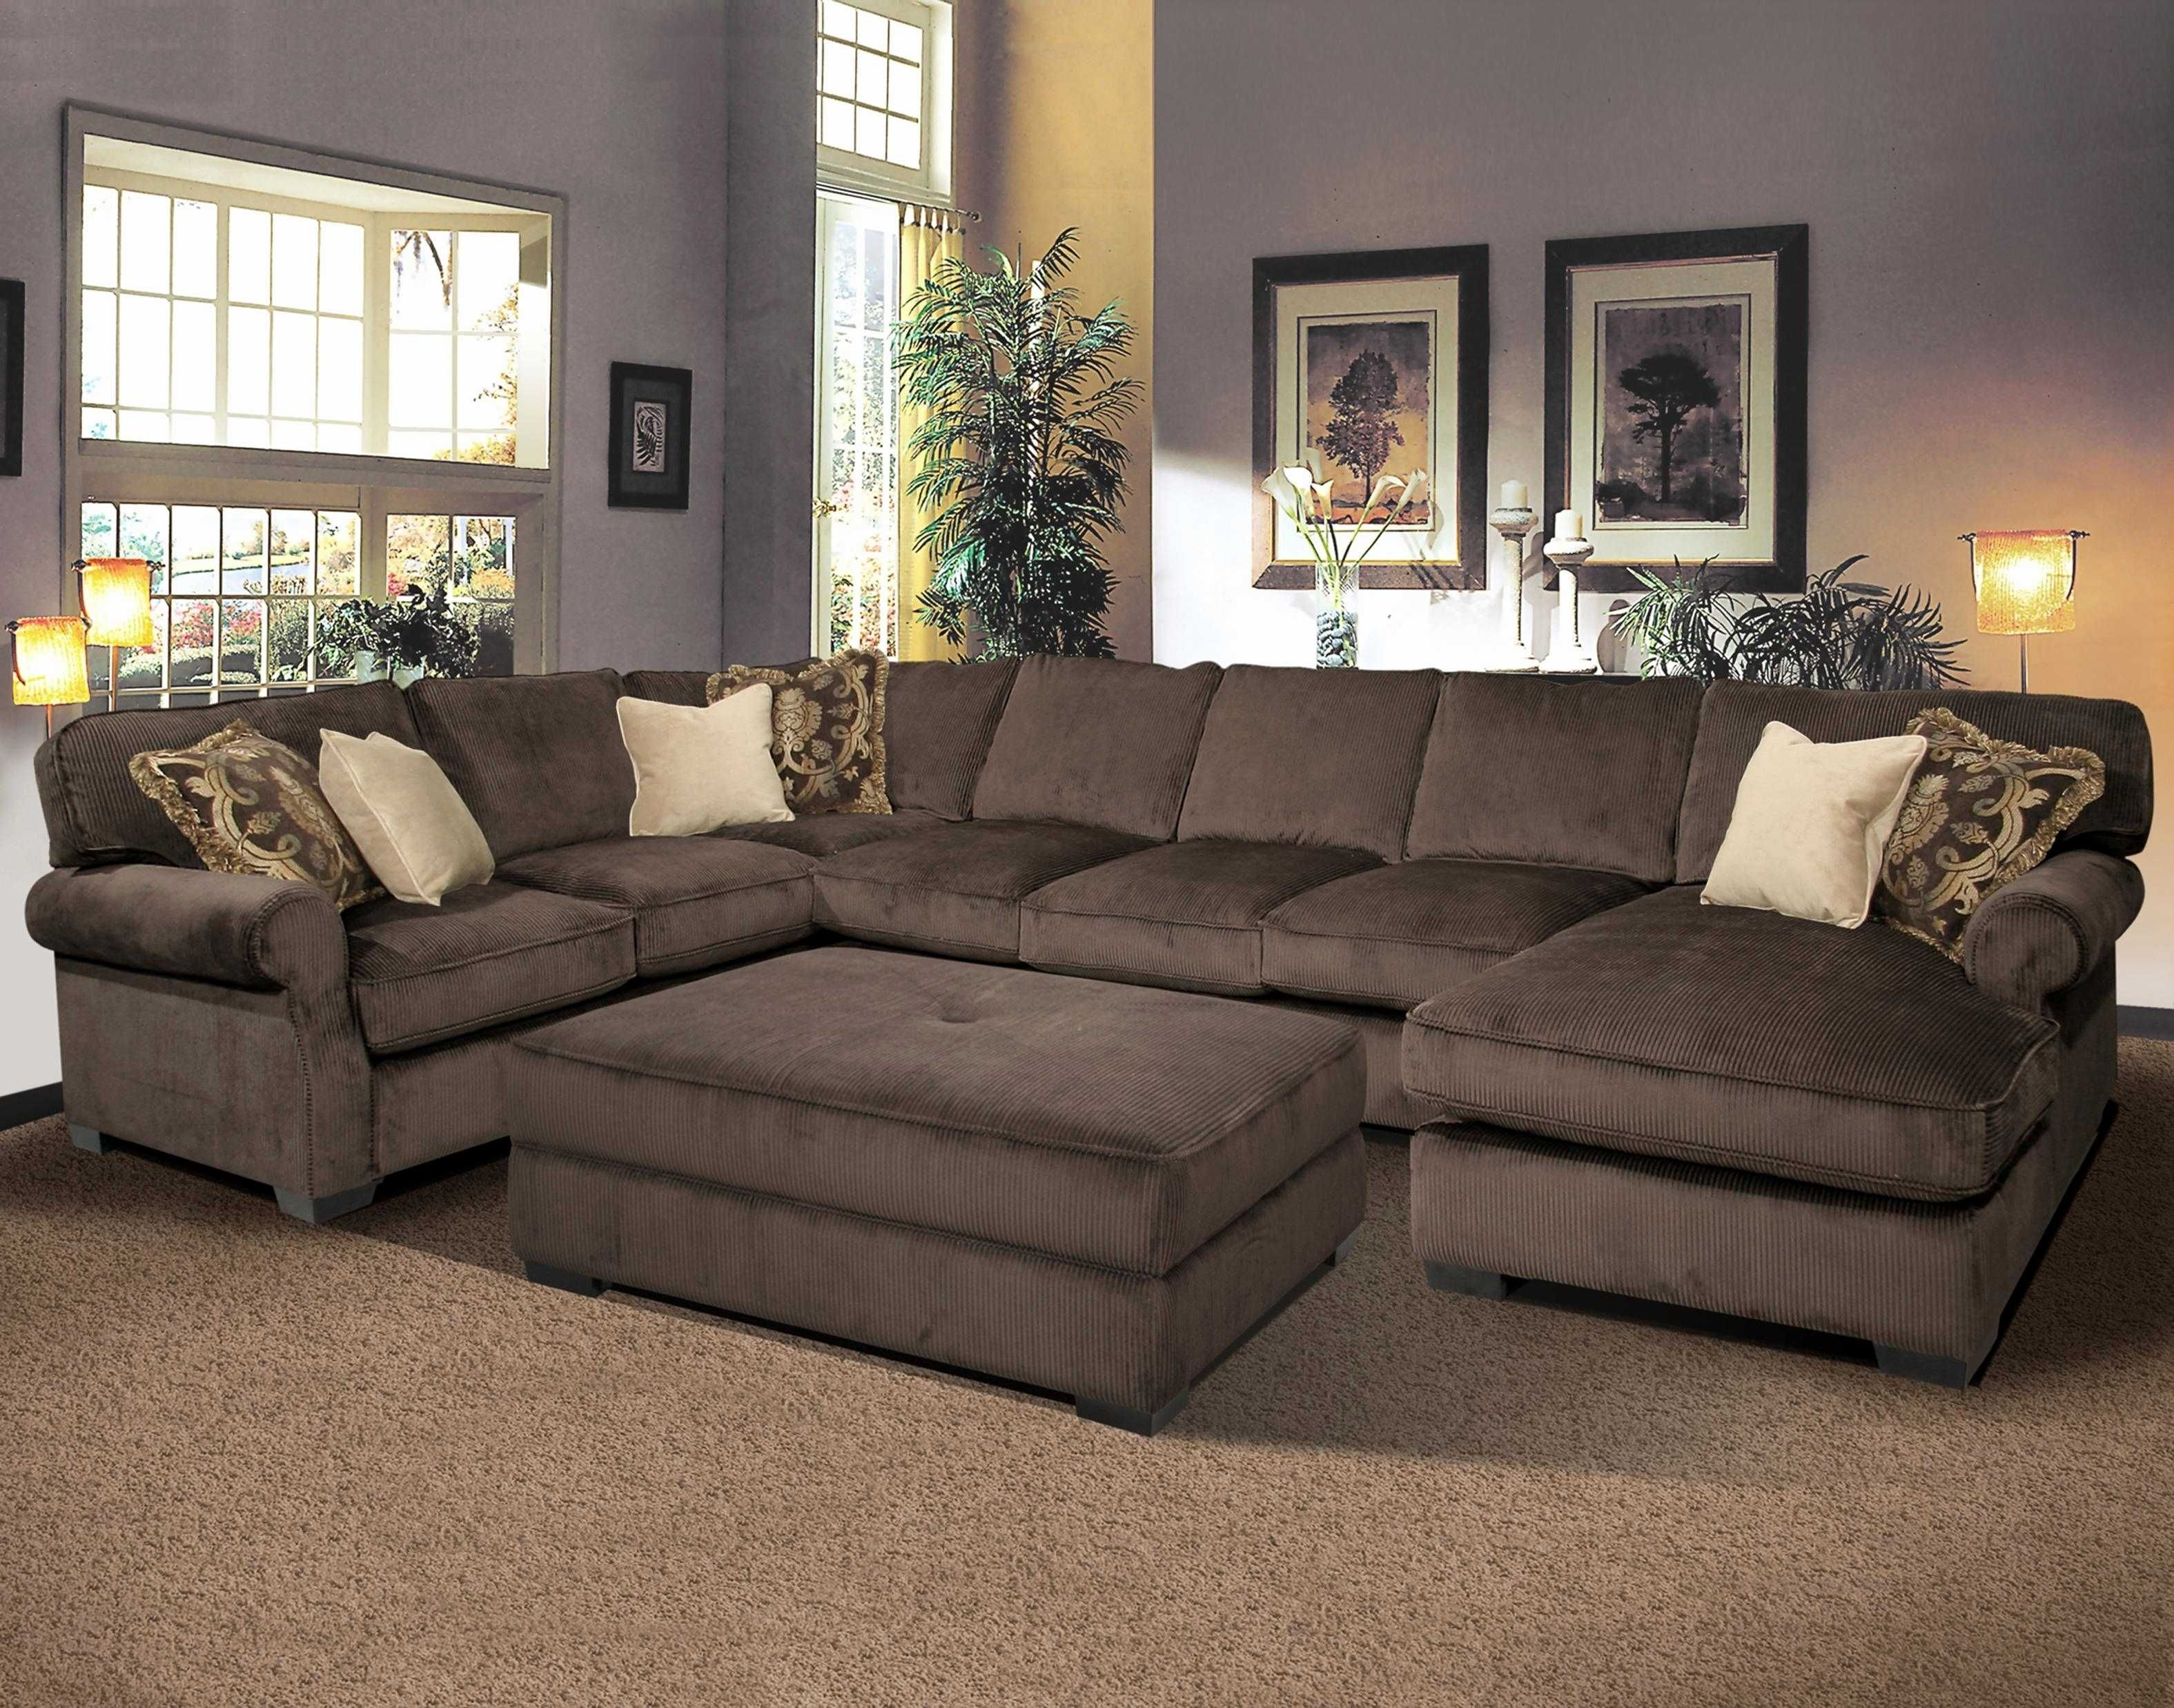 Wide Sectional Sofas In 2020 Home Furnishings Home Decor Sectional Sofa With Chaise